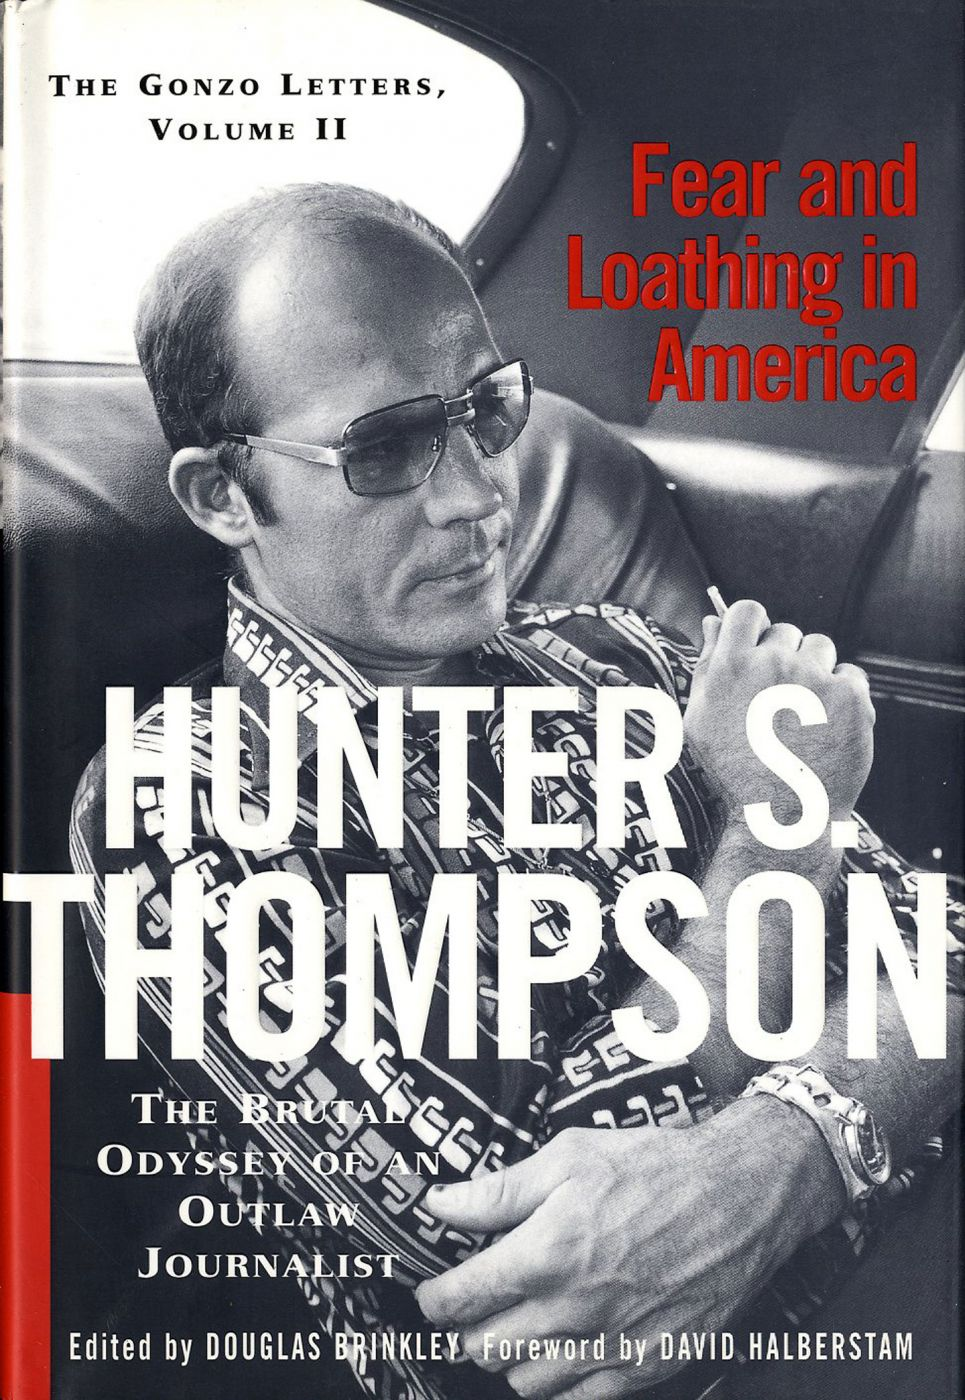 Fear and loathing in america the brutal odyssey of an outlaw fear and loathing in america the brutal odyssey of an outlaw journalist 1968 1976 the gonzo letters volume ii thompson hunter s madrichimfo Choice Image